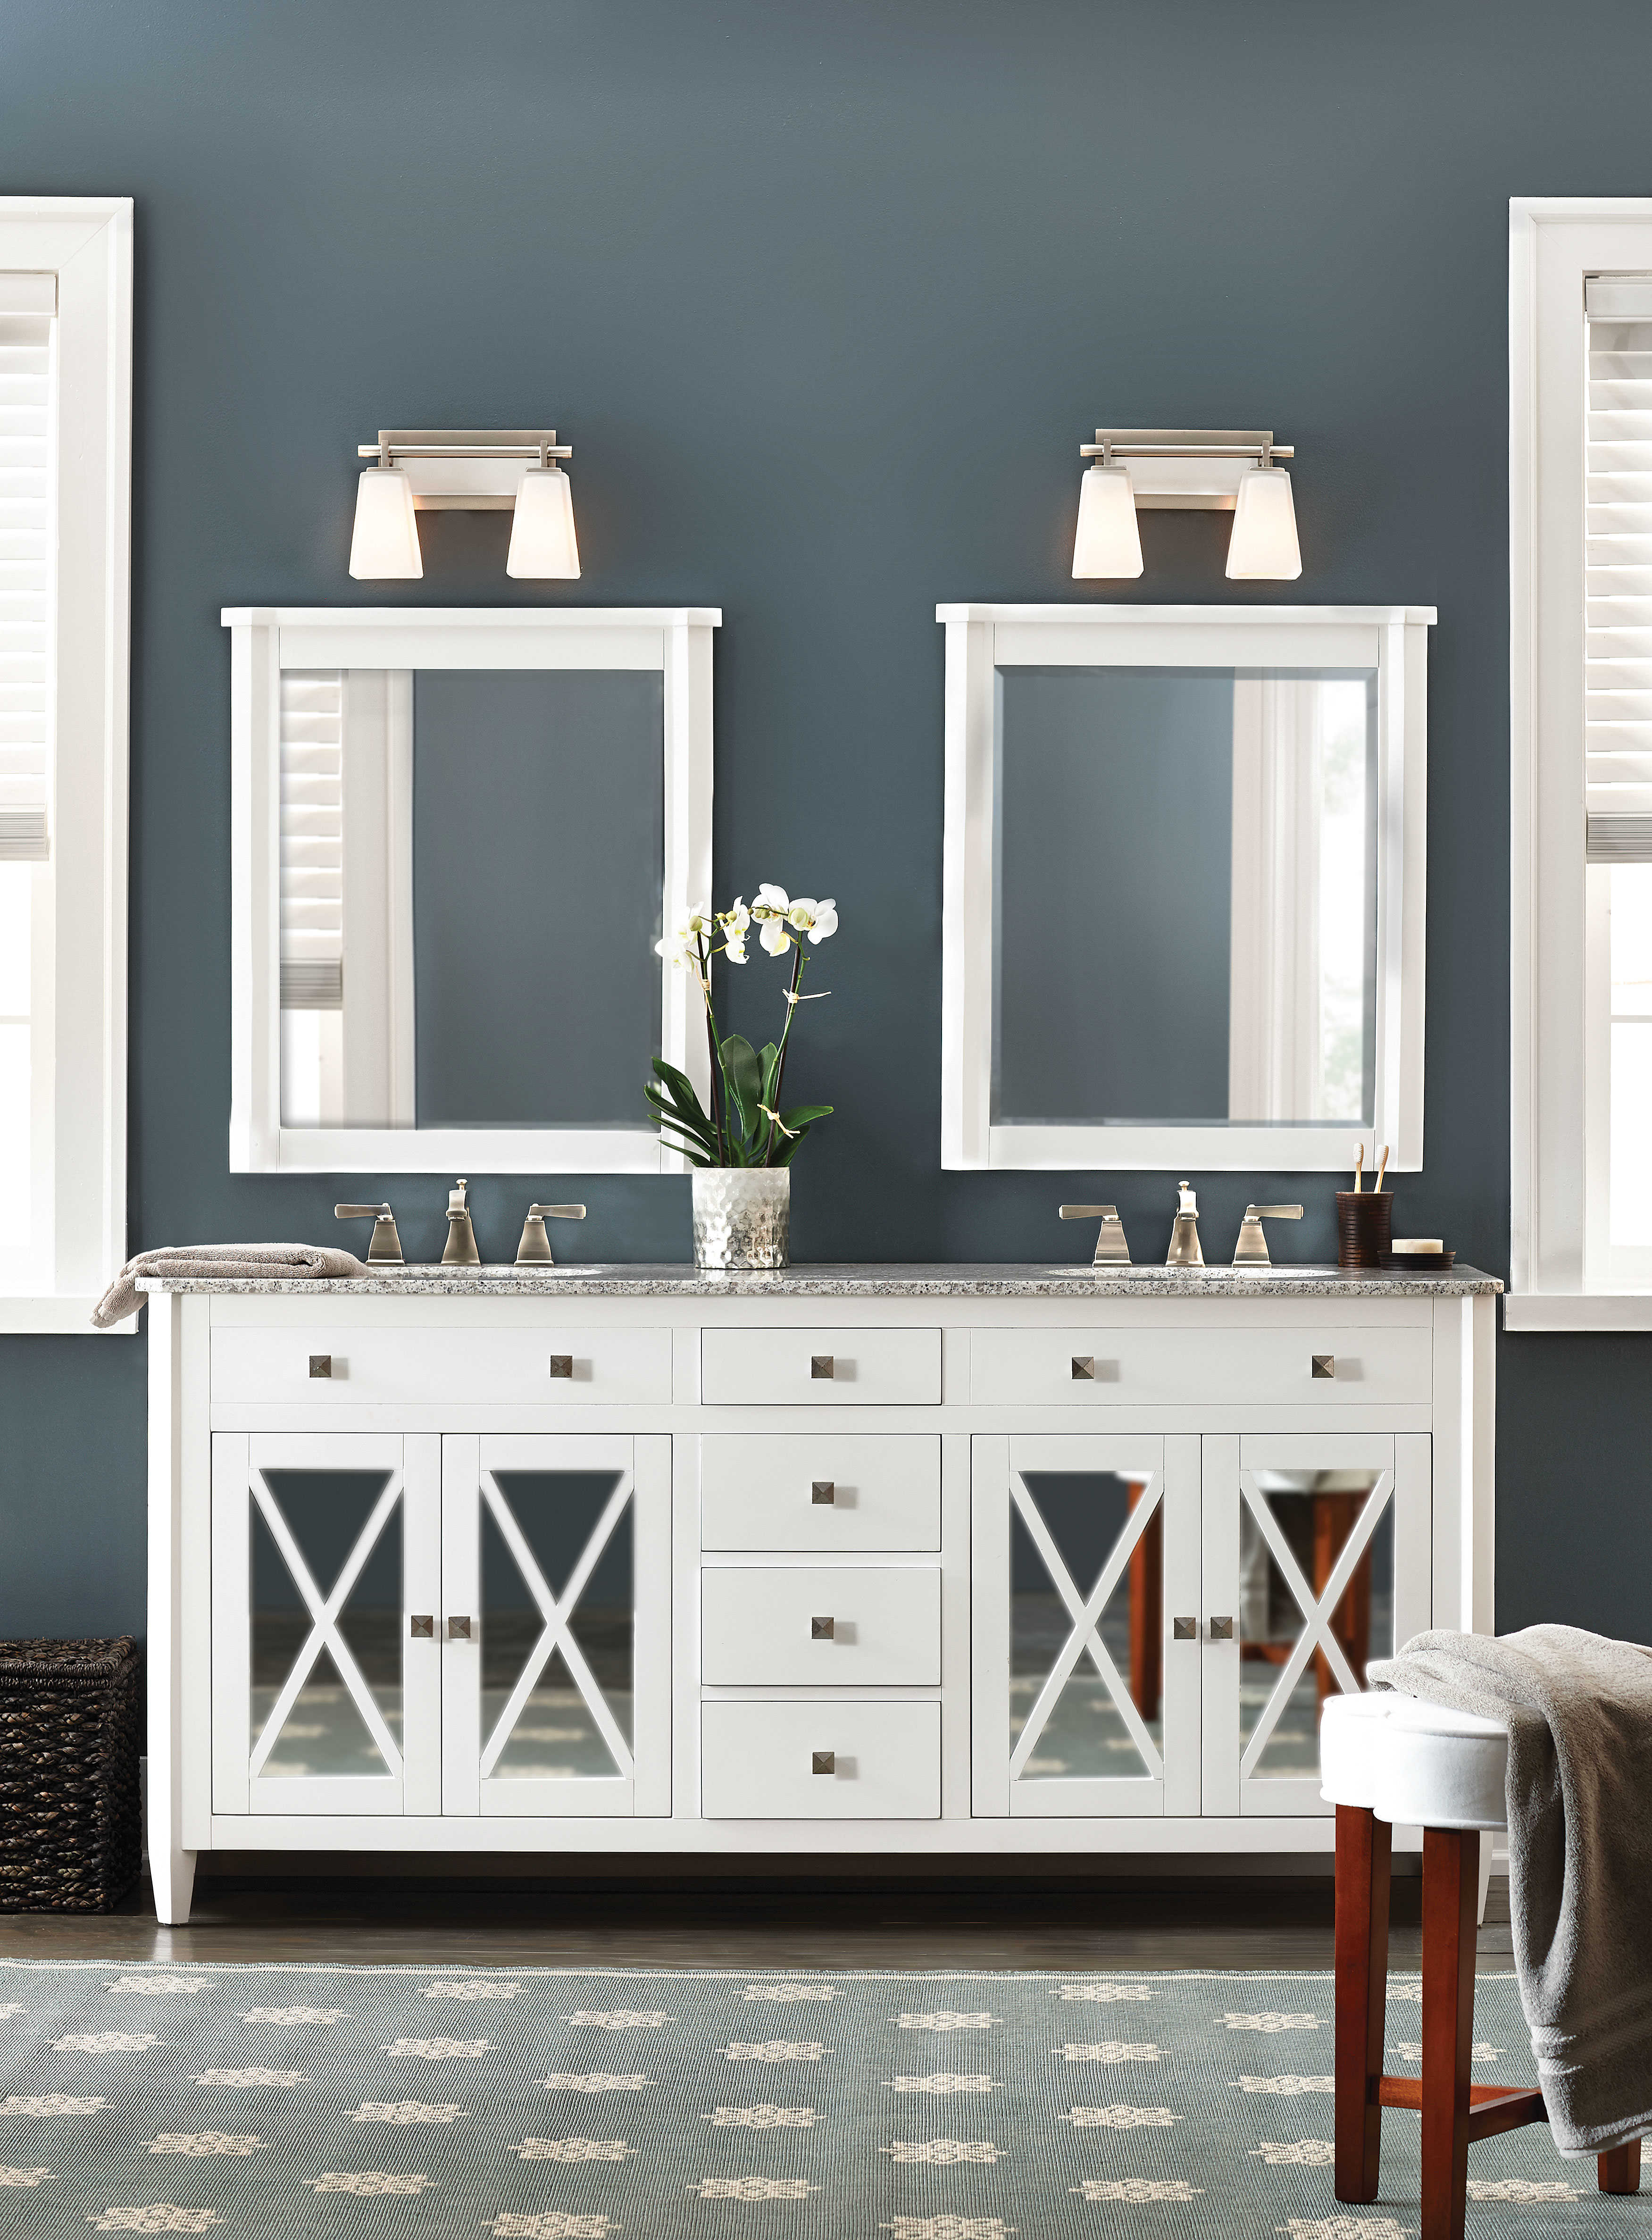 bath vanities from home decorators collection southern living - Home Decorators Vanity